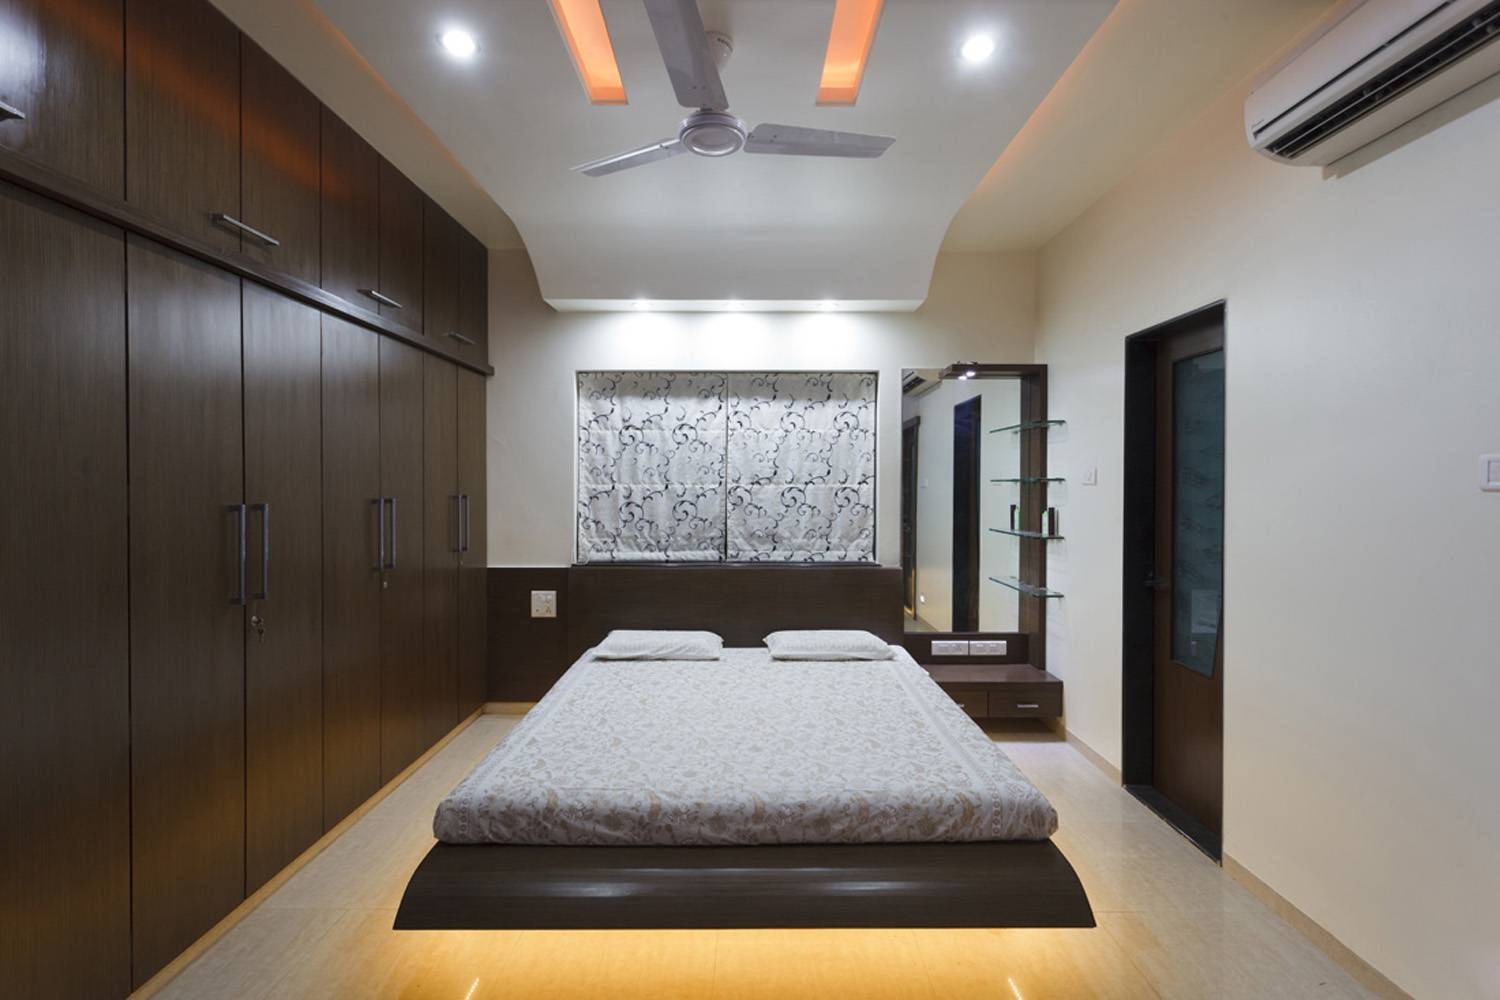 Bed room interior design portfolio leading interior - Room interior designs ...